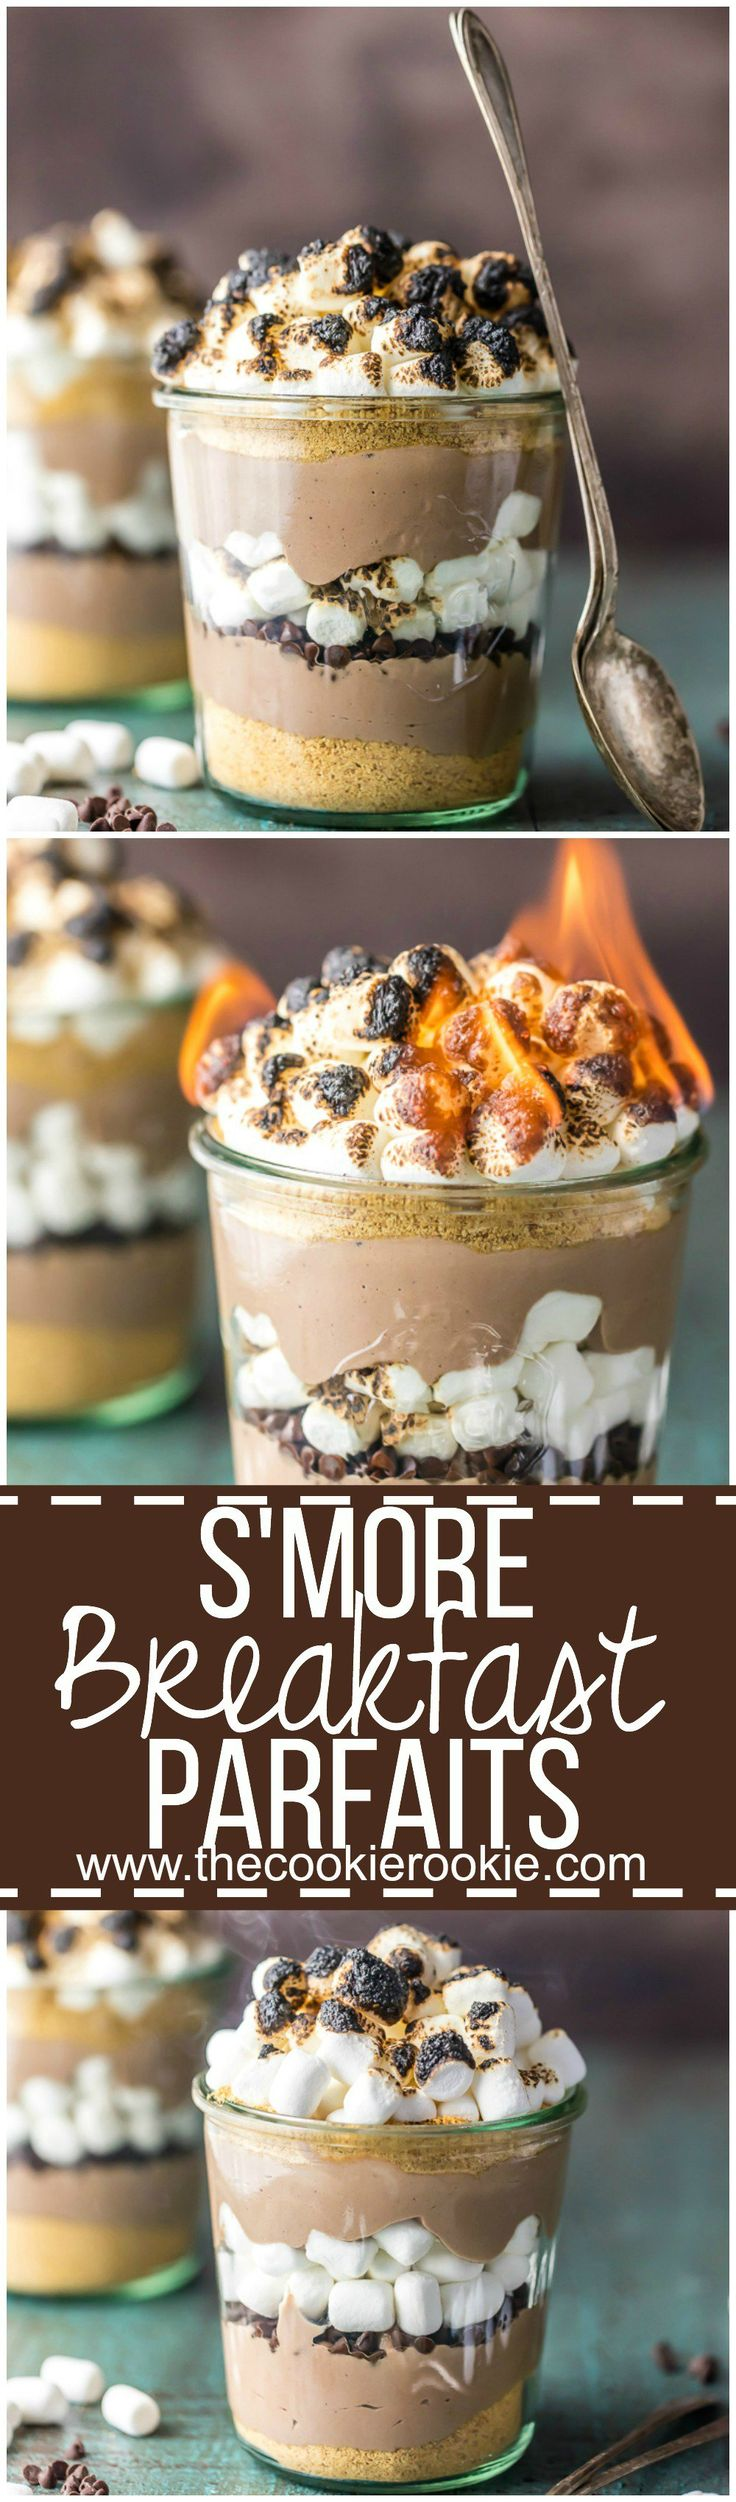 Make mornings great with S'more Breakfast Parfaits! Loaded with greek yogurt, protein powder, graham crumbs, chocolate chips, and toasted marshmallows. Delicious, easy, and a great start to the day!